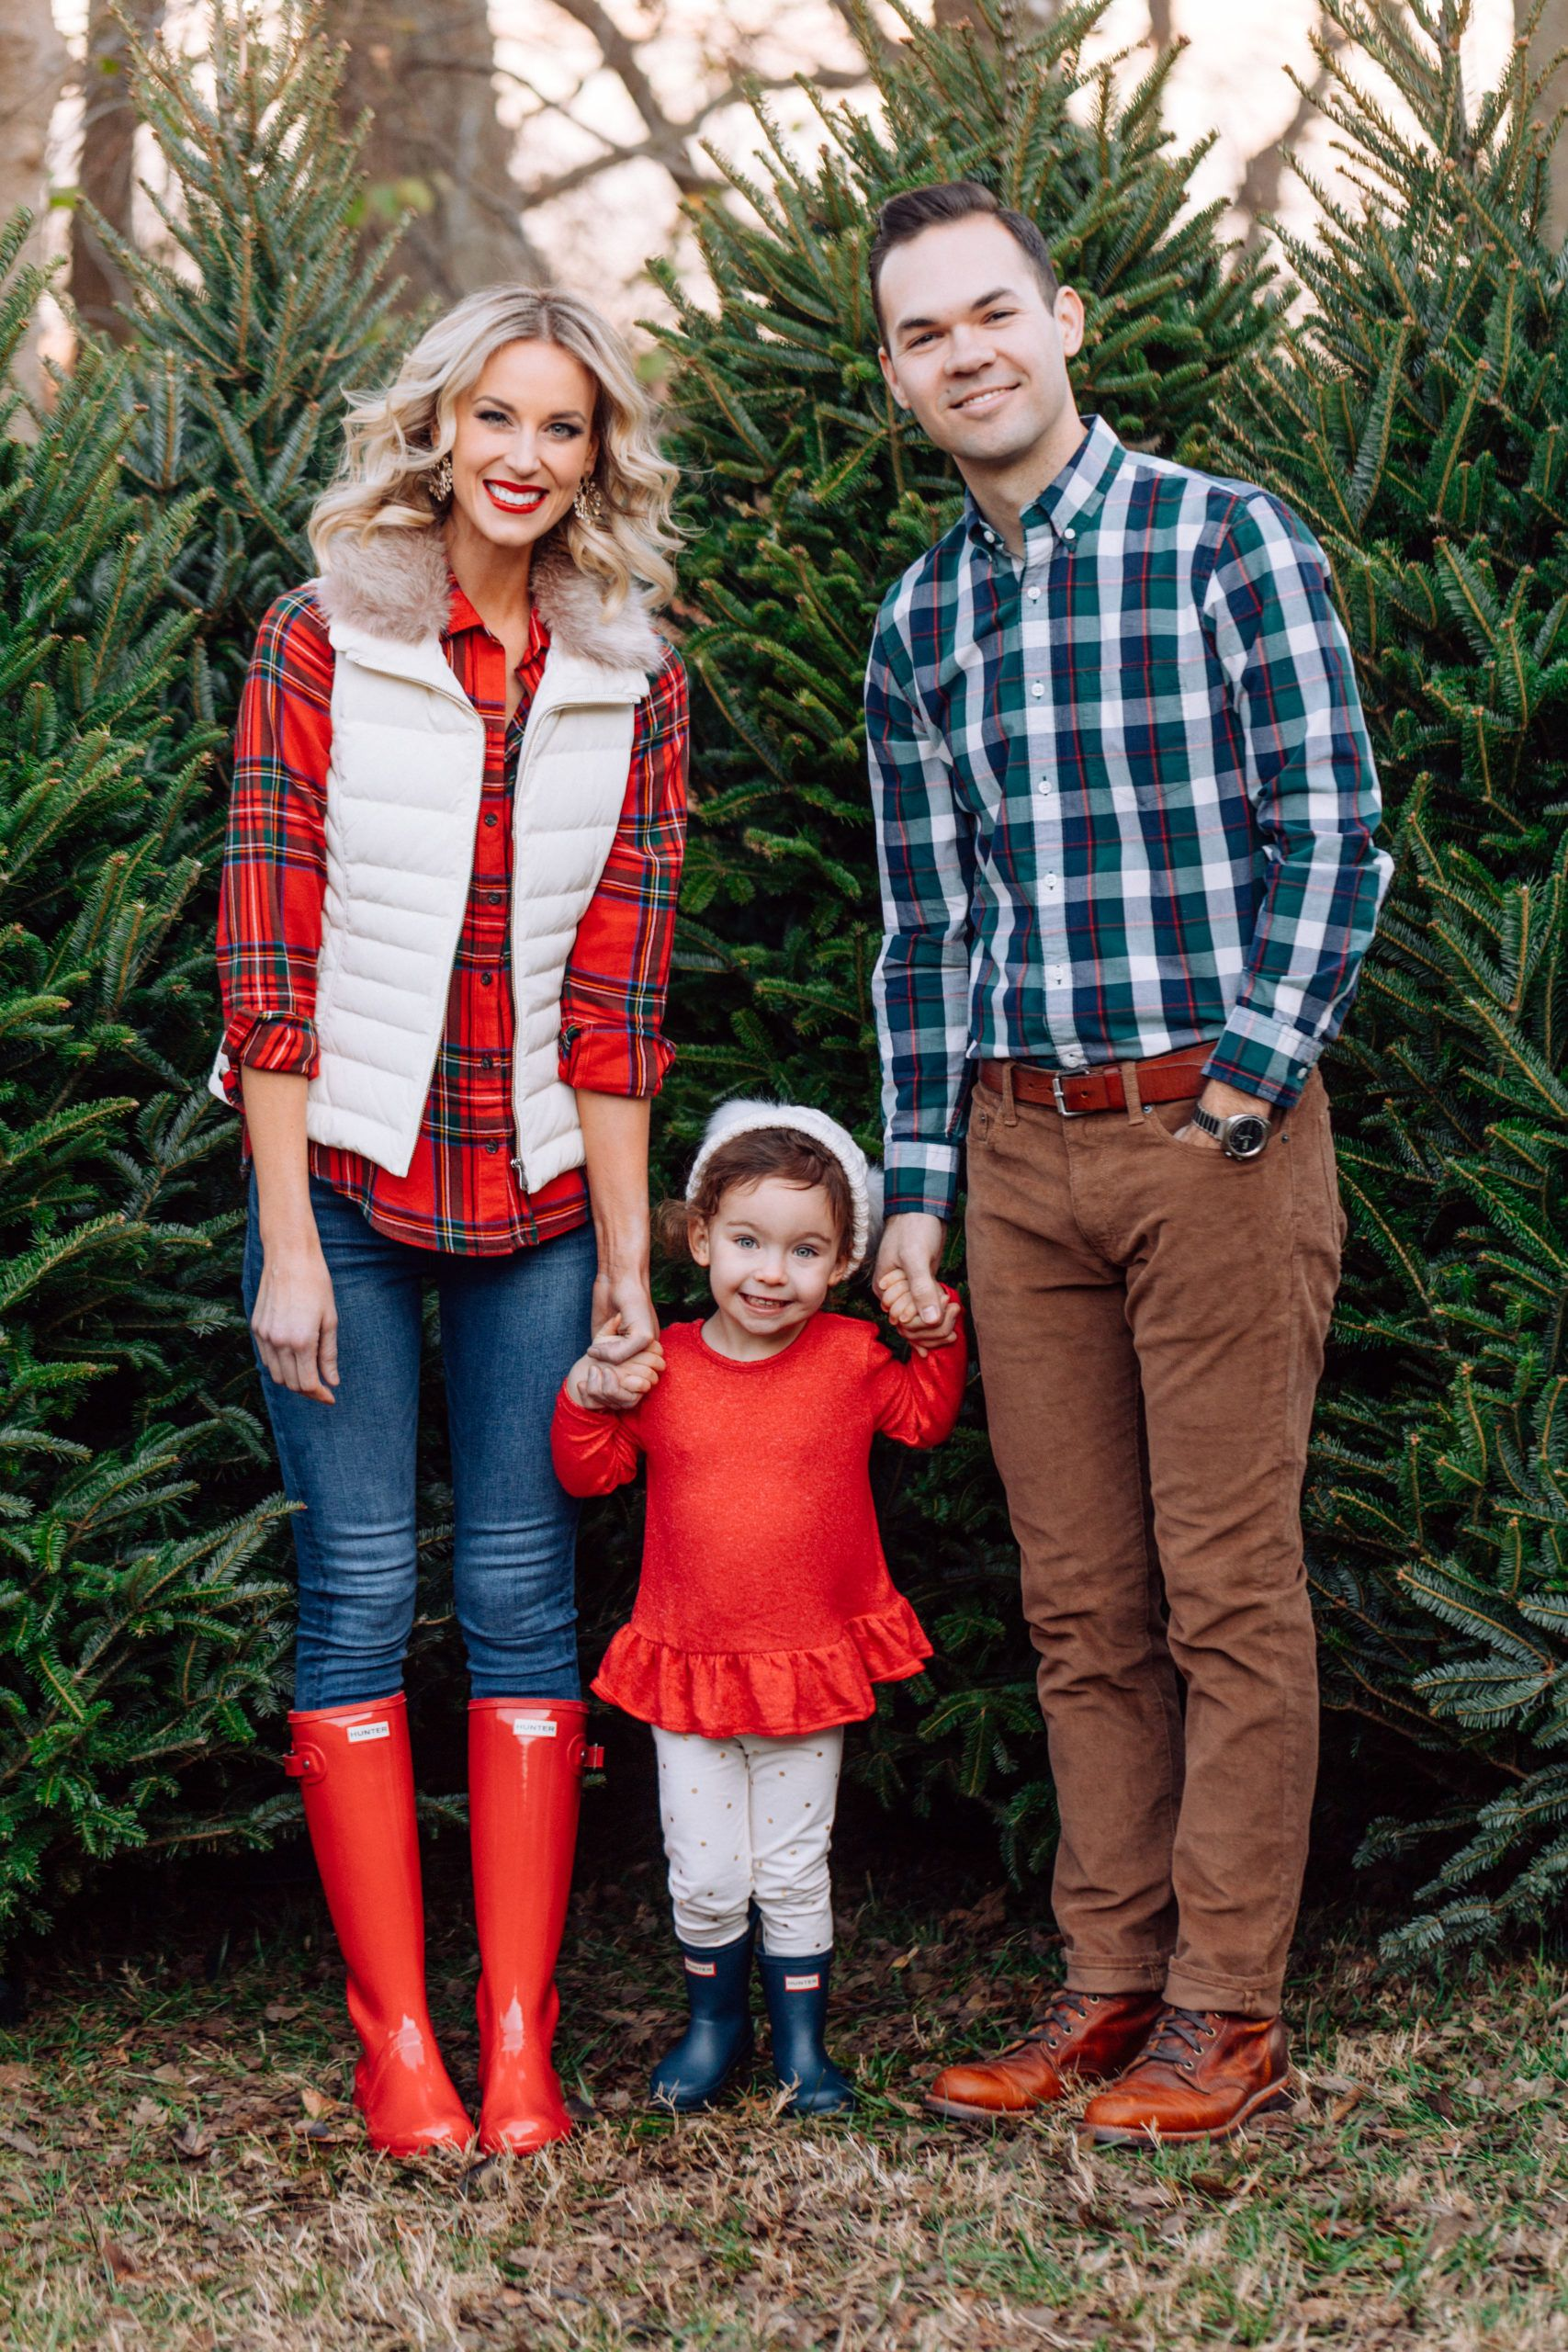 What To Wear For Family Christmas Tree Farm Photos Straight A Style Family Photo Outfits Winter Family Christmas Outfits Family Christmas Pictures Outfits